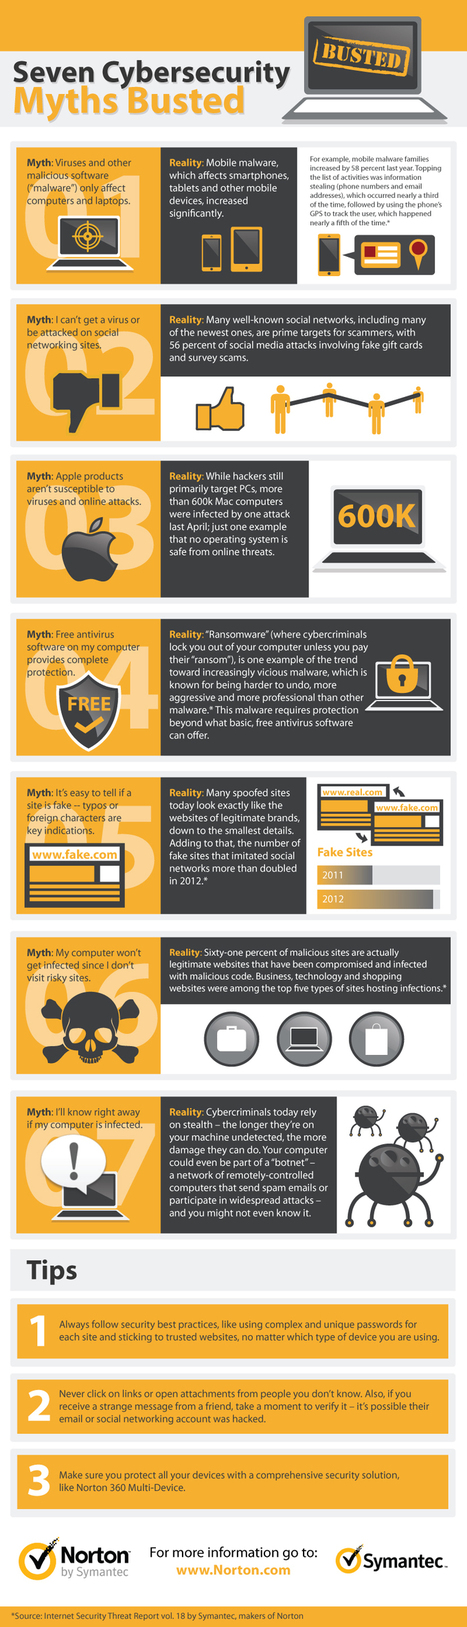 7 Cybersecurity Myths Busted [Infographic] | Sizzlin' News | Scoop.it